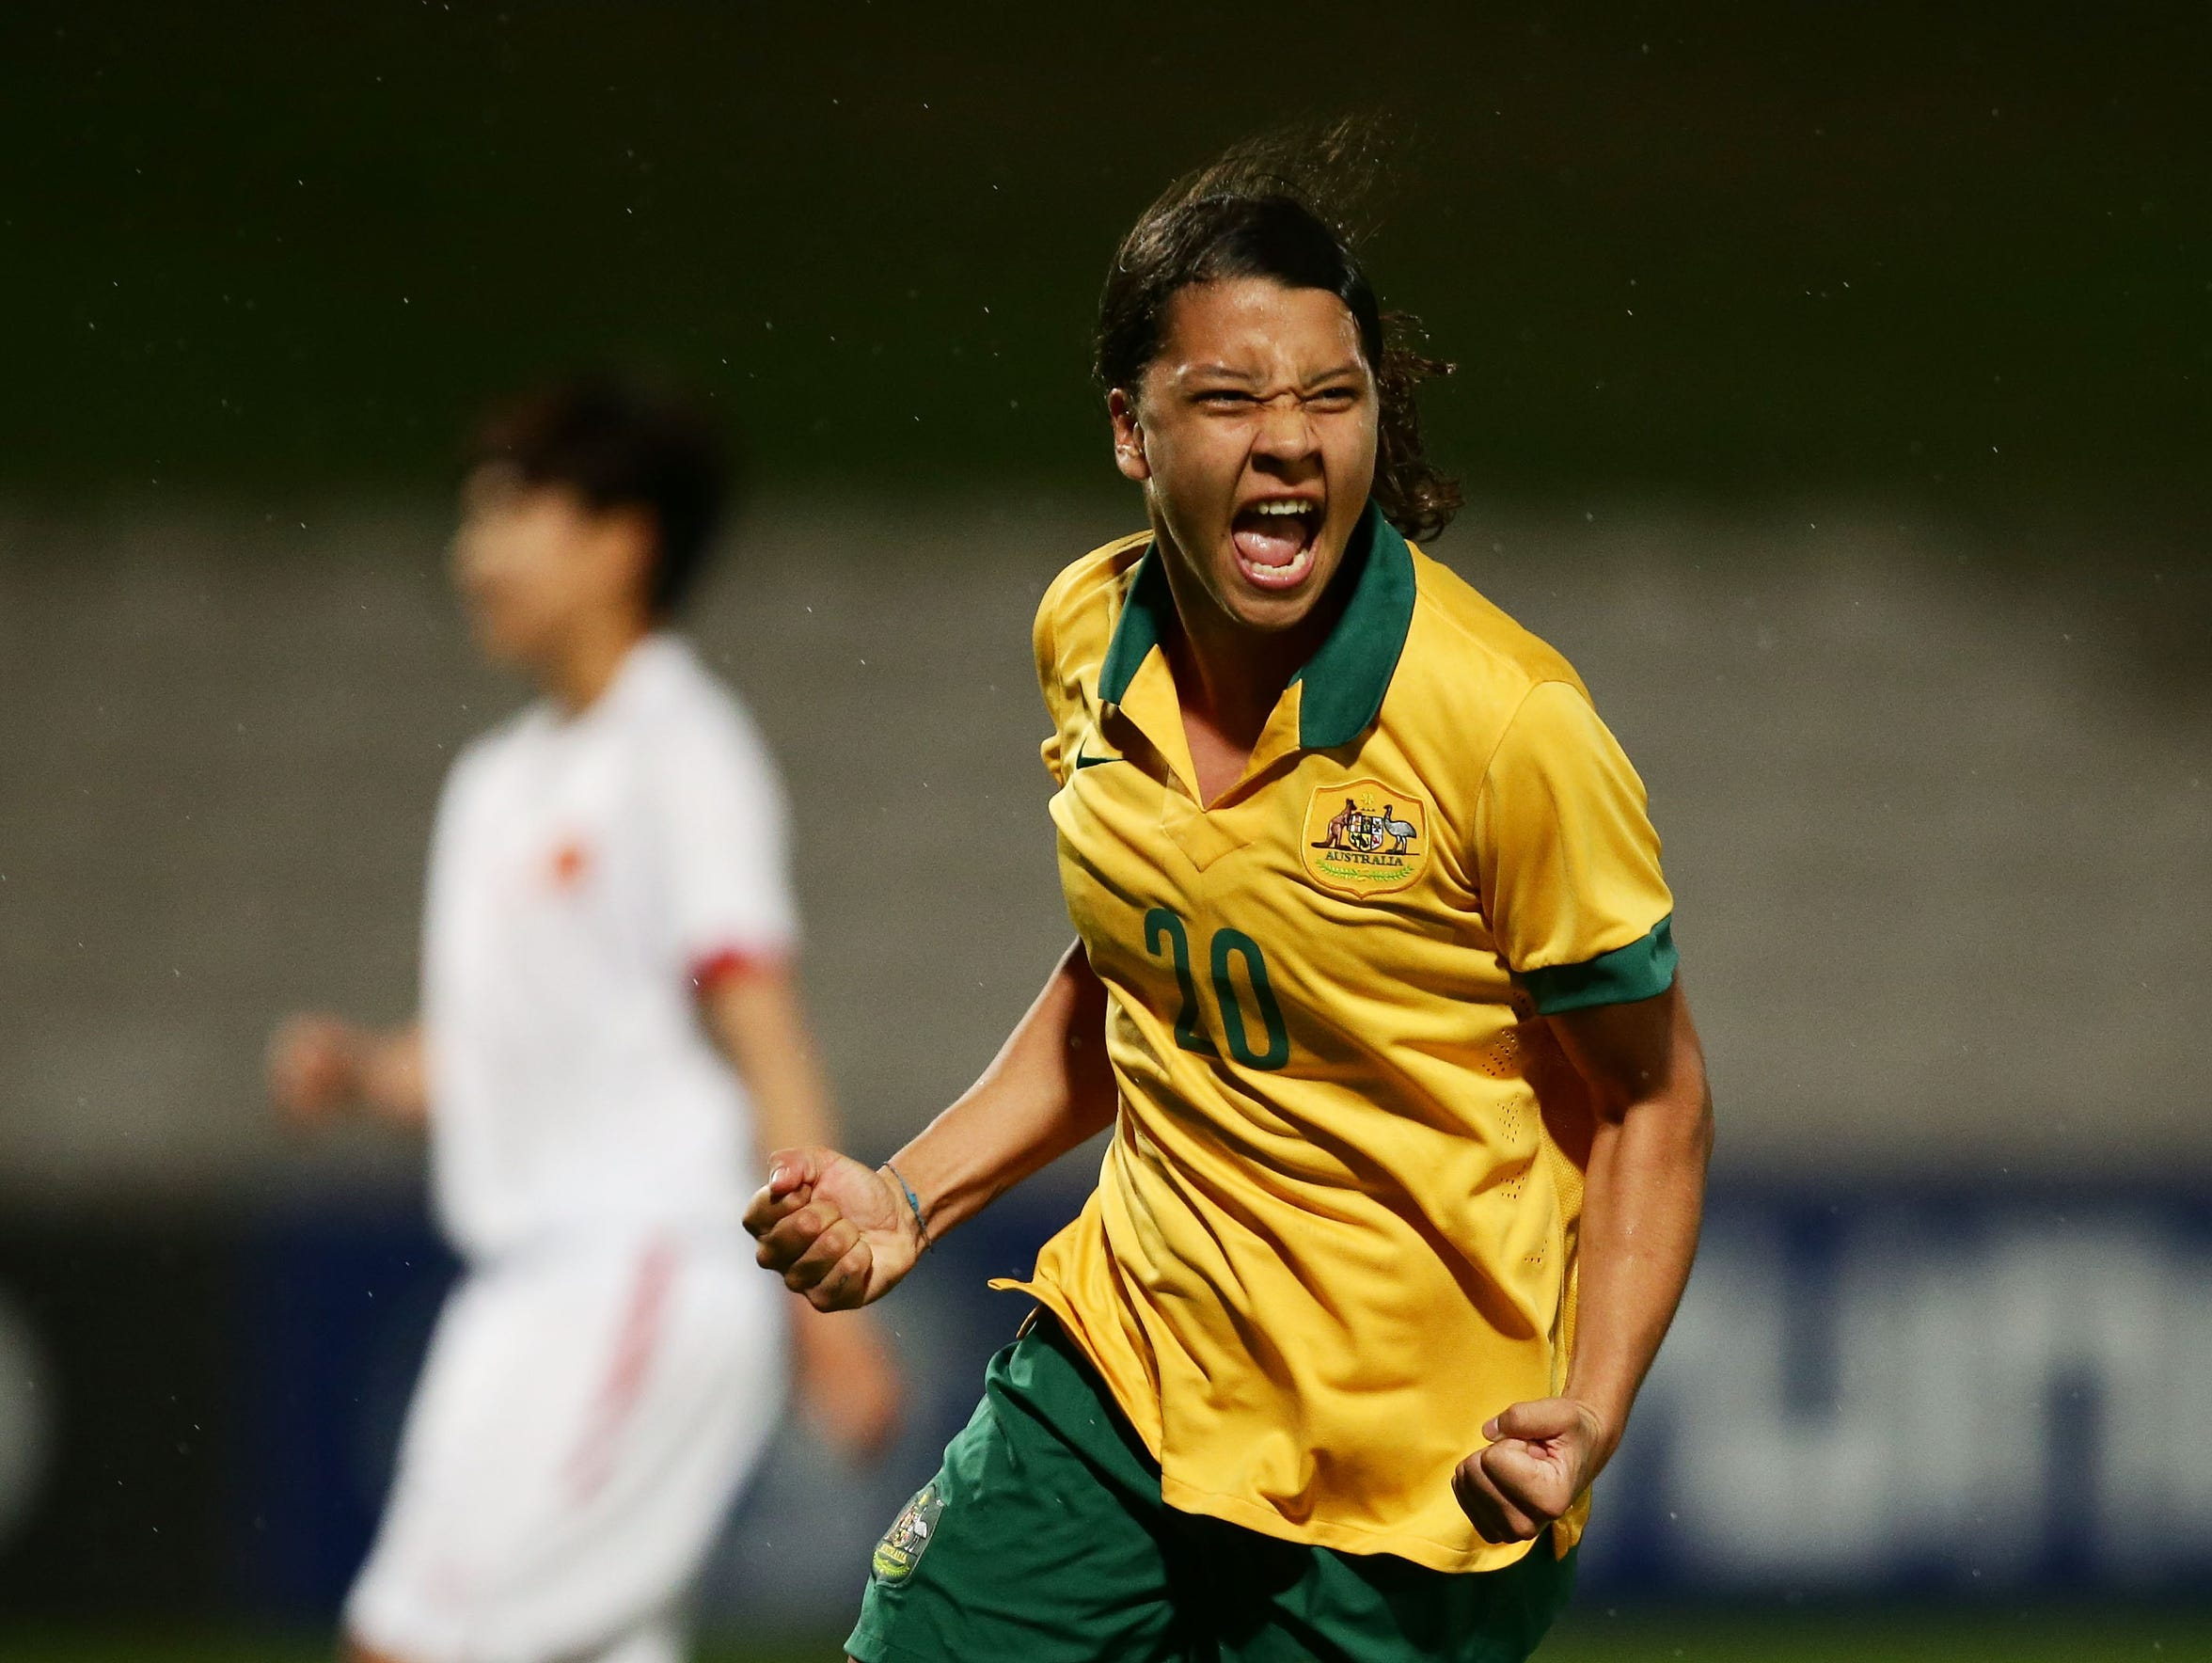 Australia's Samantha Kerr reacts after scoring a goal